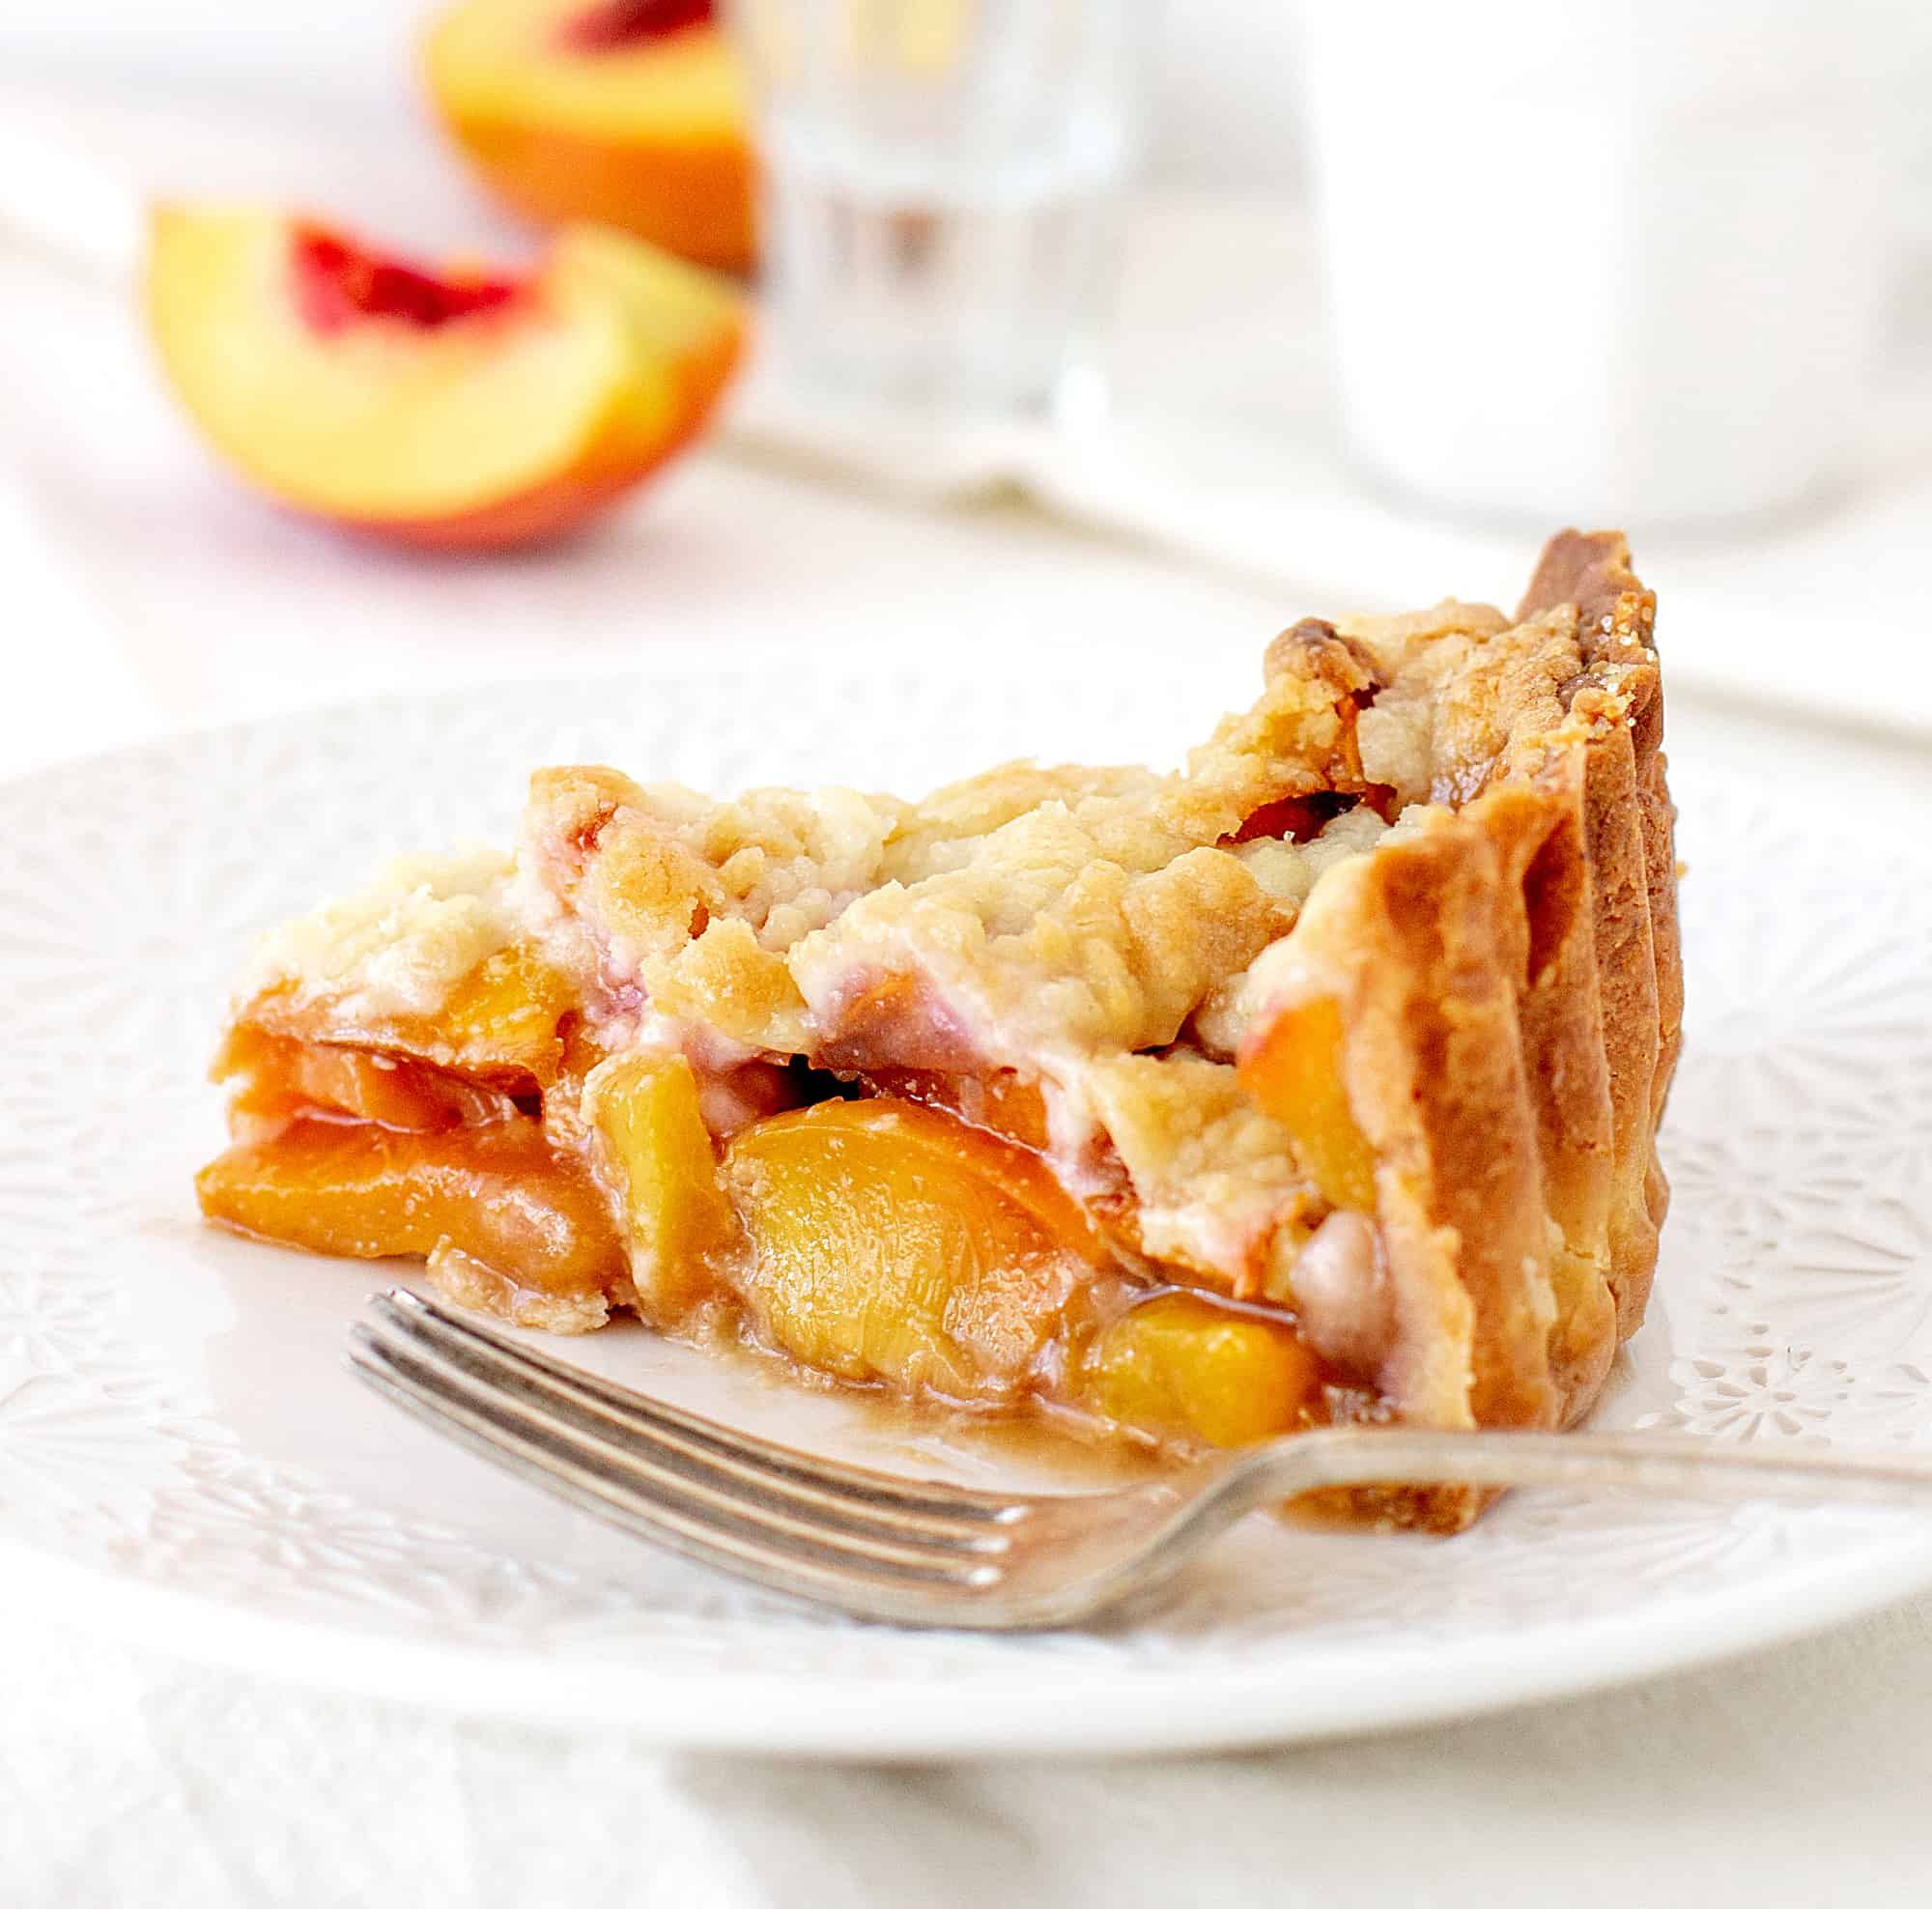 Slice of peach pie on white plate, silver fork, white background, peach wedges